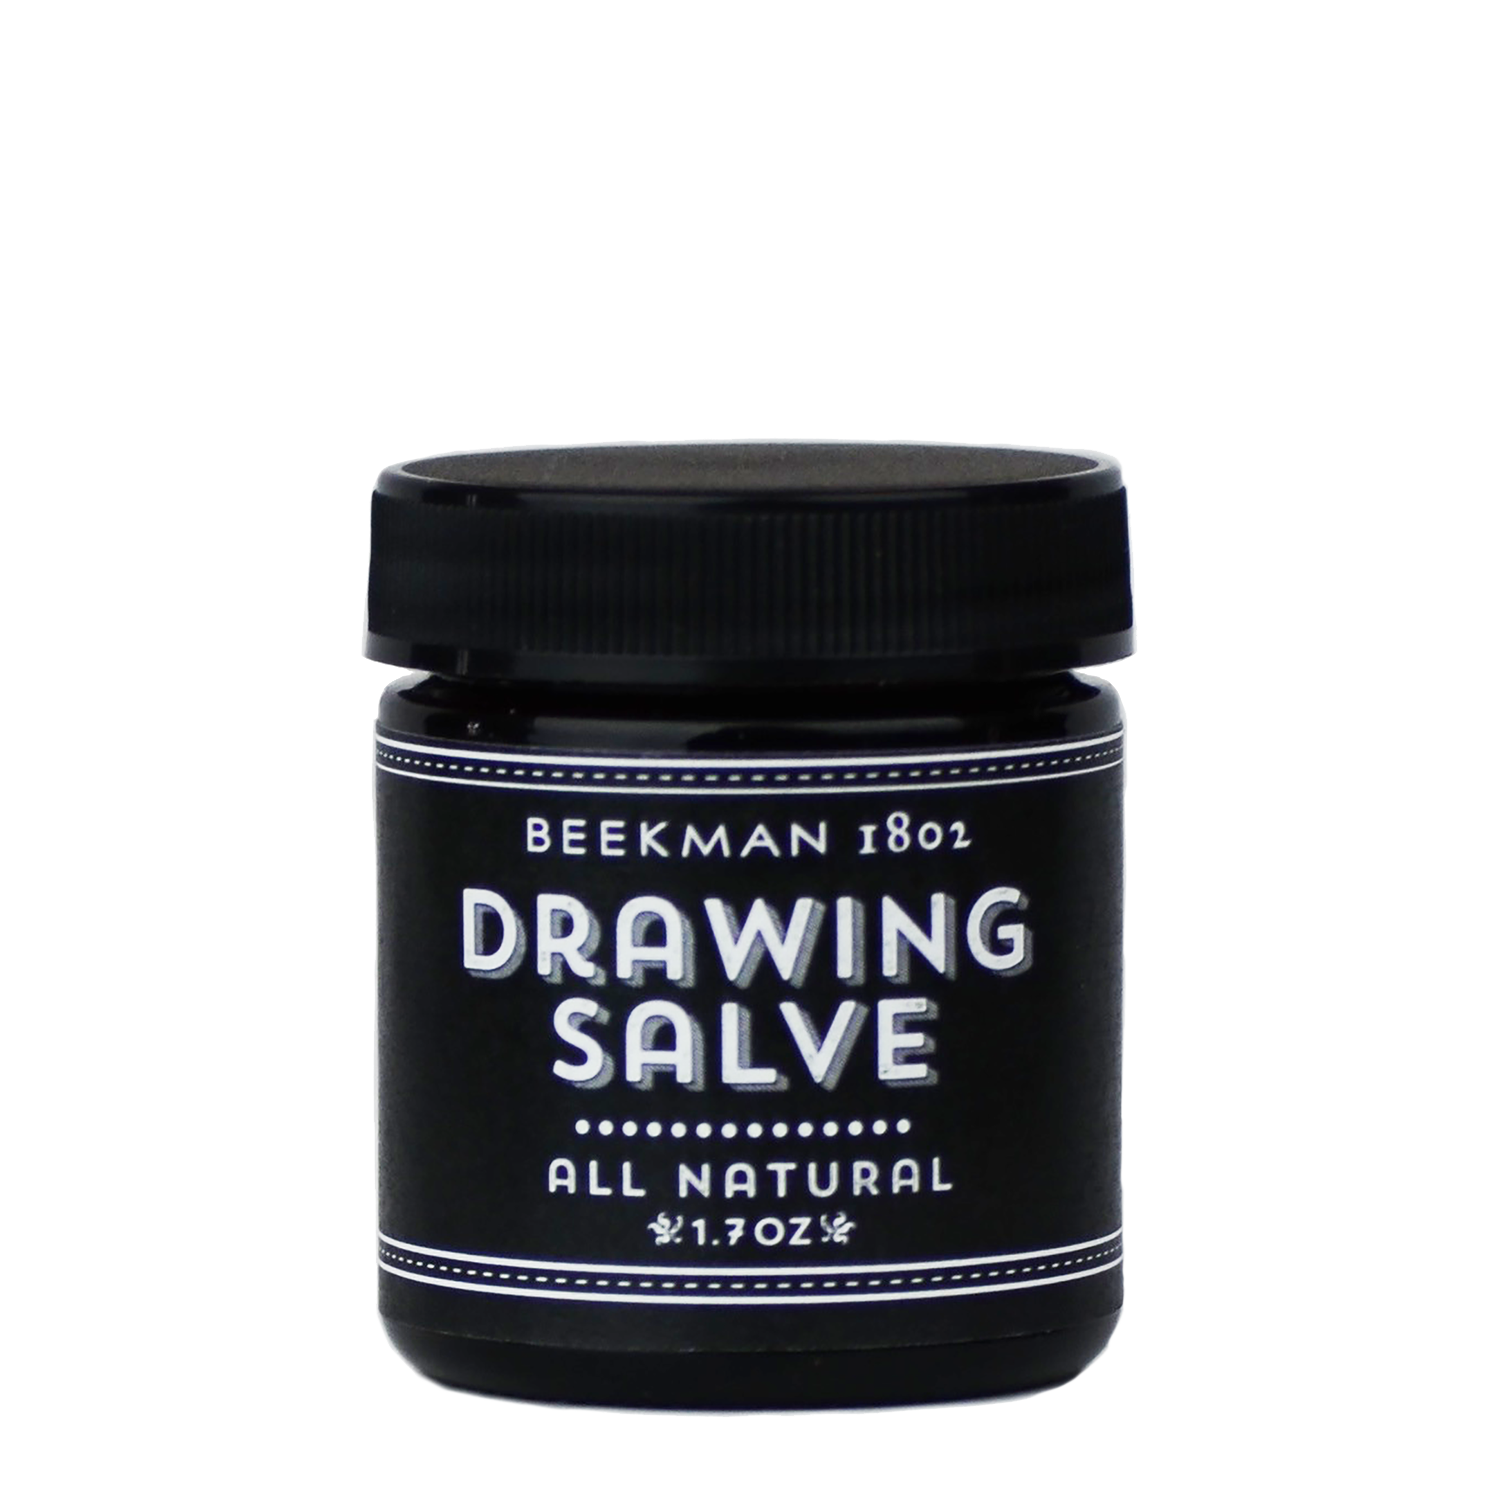 Drawing sauve canada. Beekman salve ecommerce hey